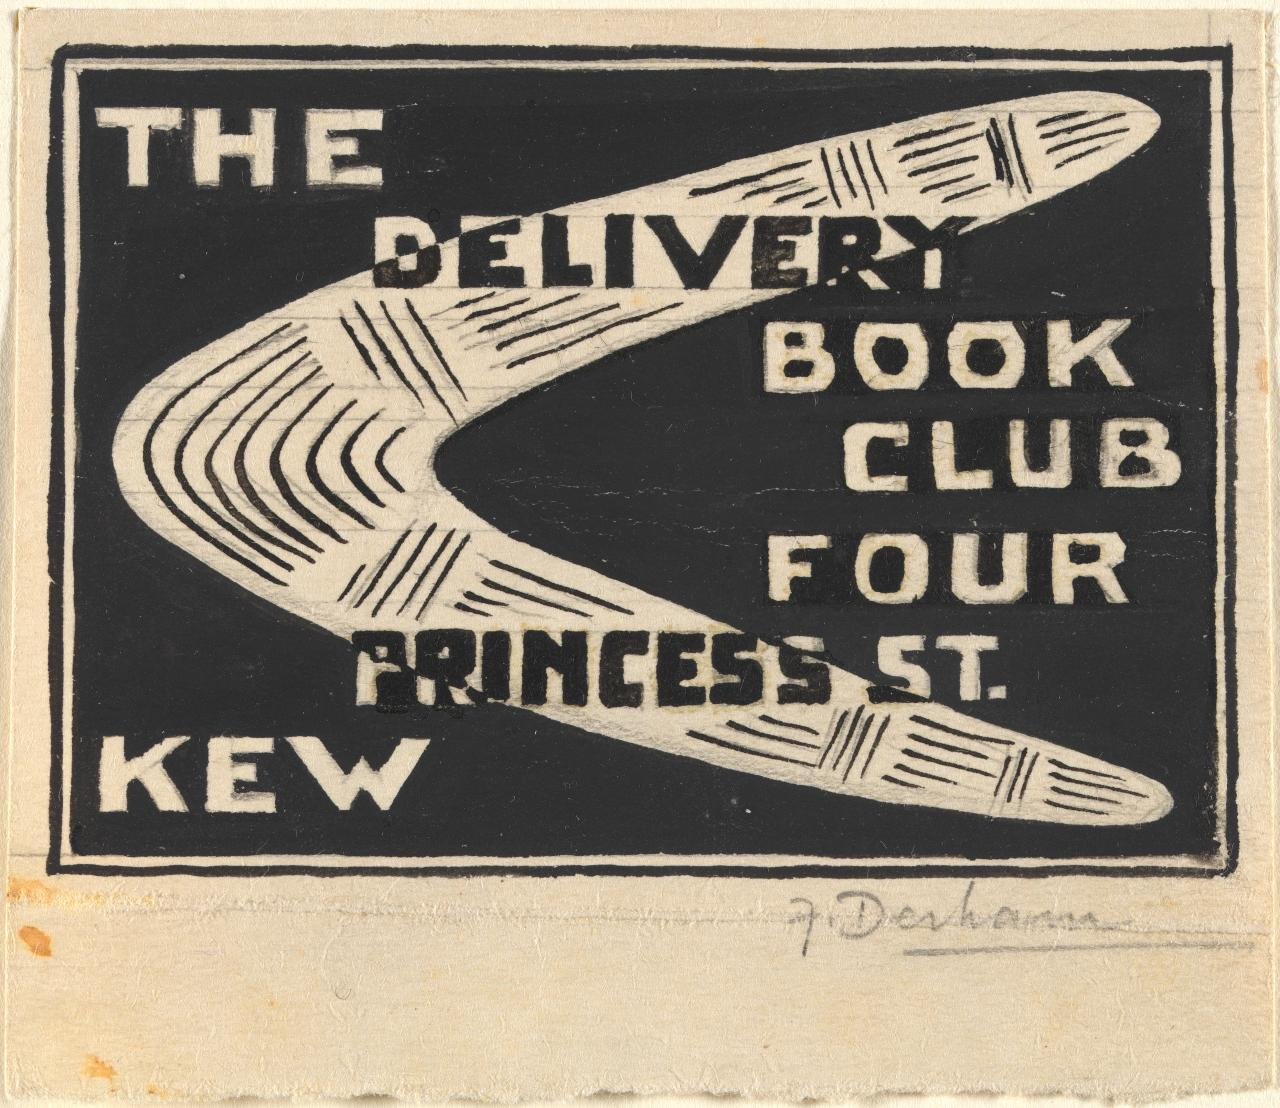 The Delivery Book Club, four Princess Street, Kew